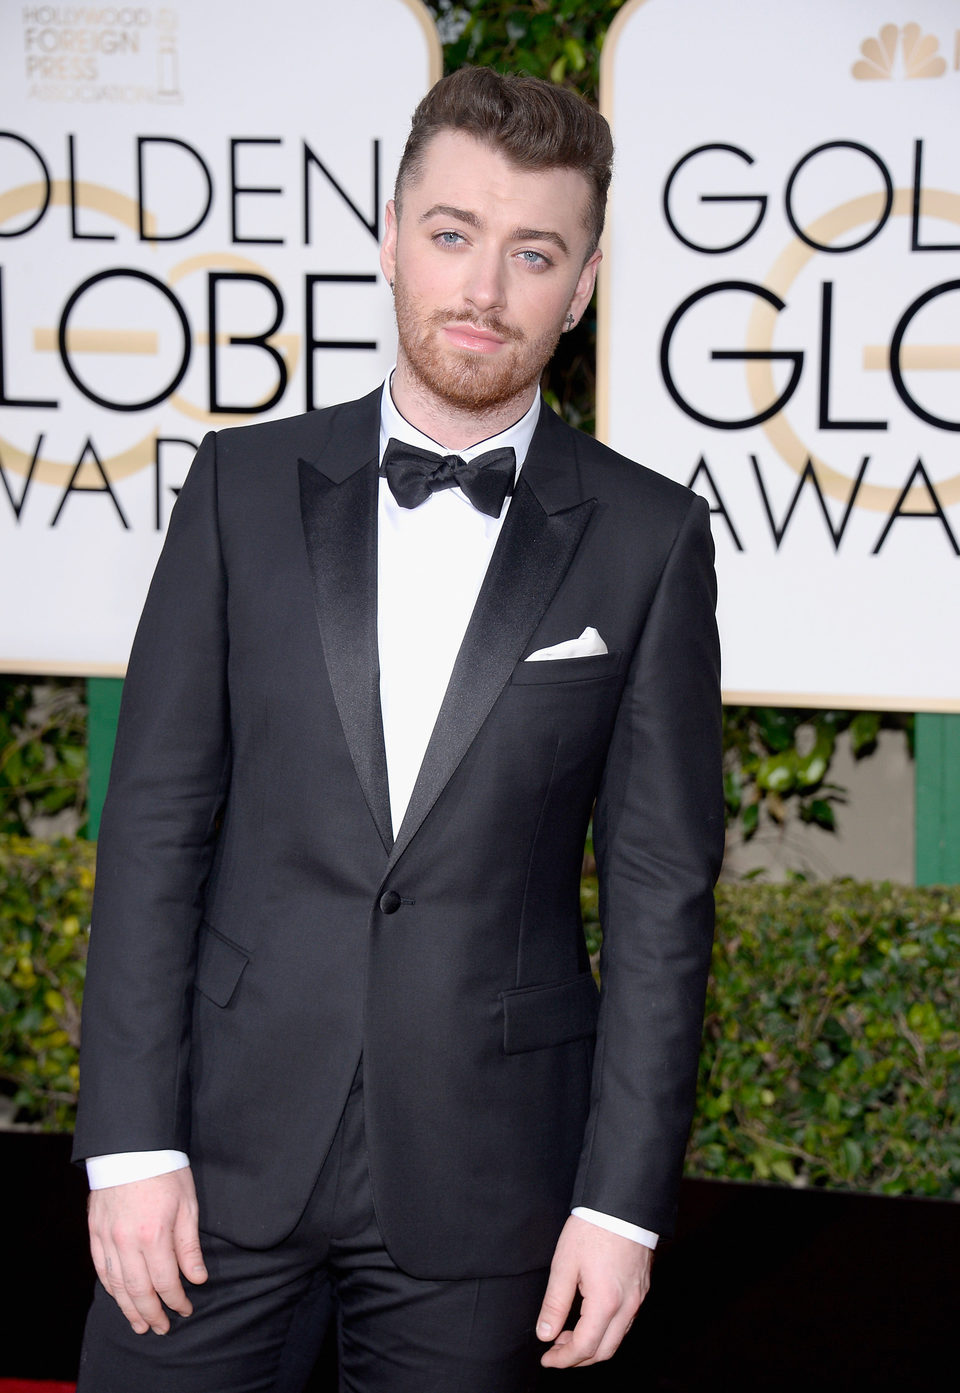 Sam Smith at the 2016 Golden Globes red carpet